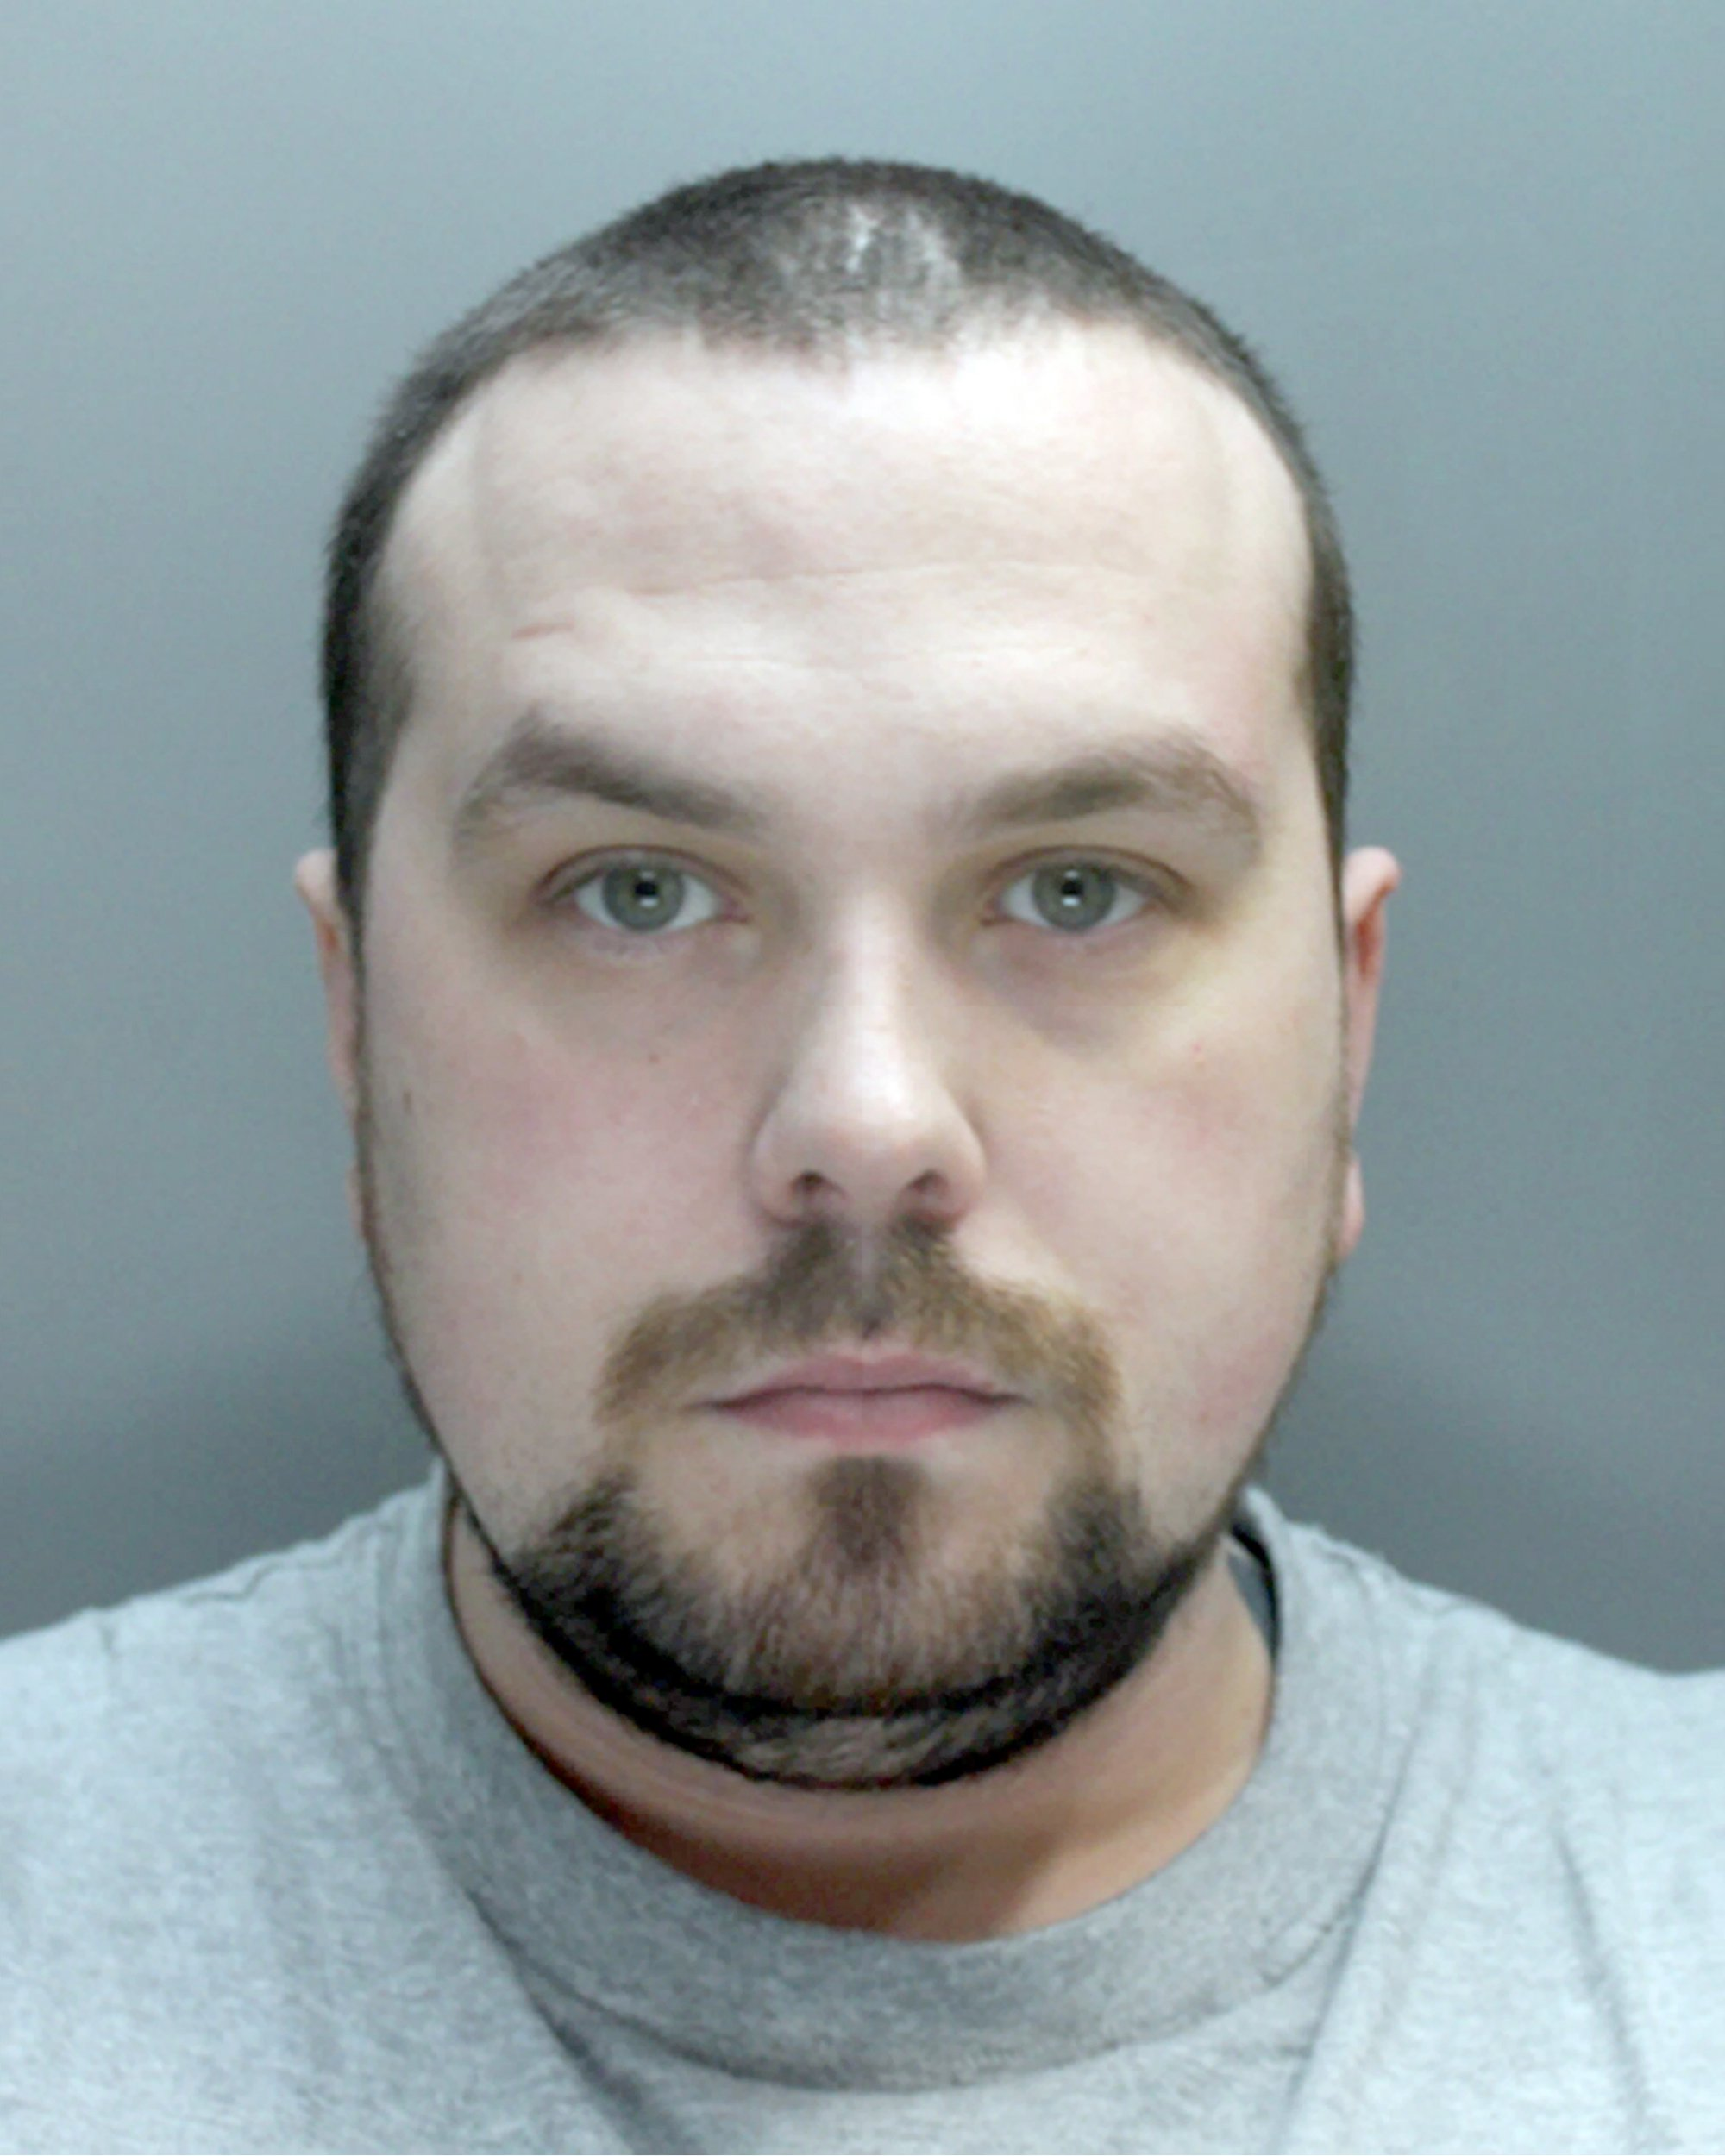 Undated handout photo issued by Merseyside Police of Andrew Burke, 30, who has pleaded guilty at Liverpool Crown Court for the murder of Ms Hayes, 28, at her workplace in Southport. PRESS ASSOCIATION Photo. Issue date: Monday April 9, 2018. See PA story COURTS Southport. Photo credit should read: Merseyside Police/PA Wire NOTE TO EDITORS: This handout photo may only be used in for editorial reporting purposes for the contemporaneous illustration of events, things or the people in the image or facts mentioned in the caption. Reuse of the picture may require further permission from the copyright holder.